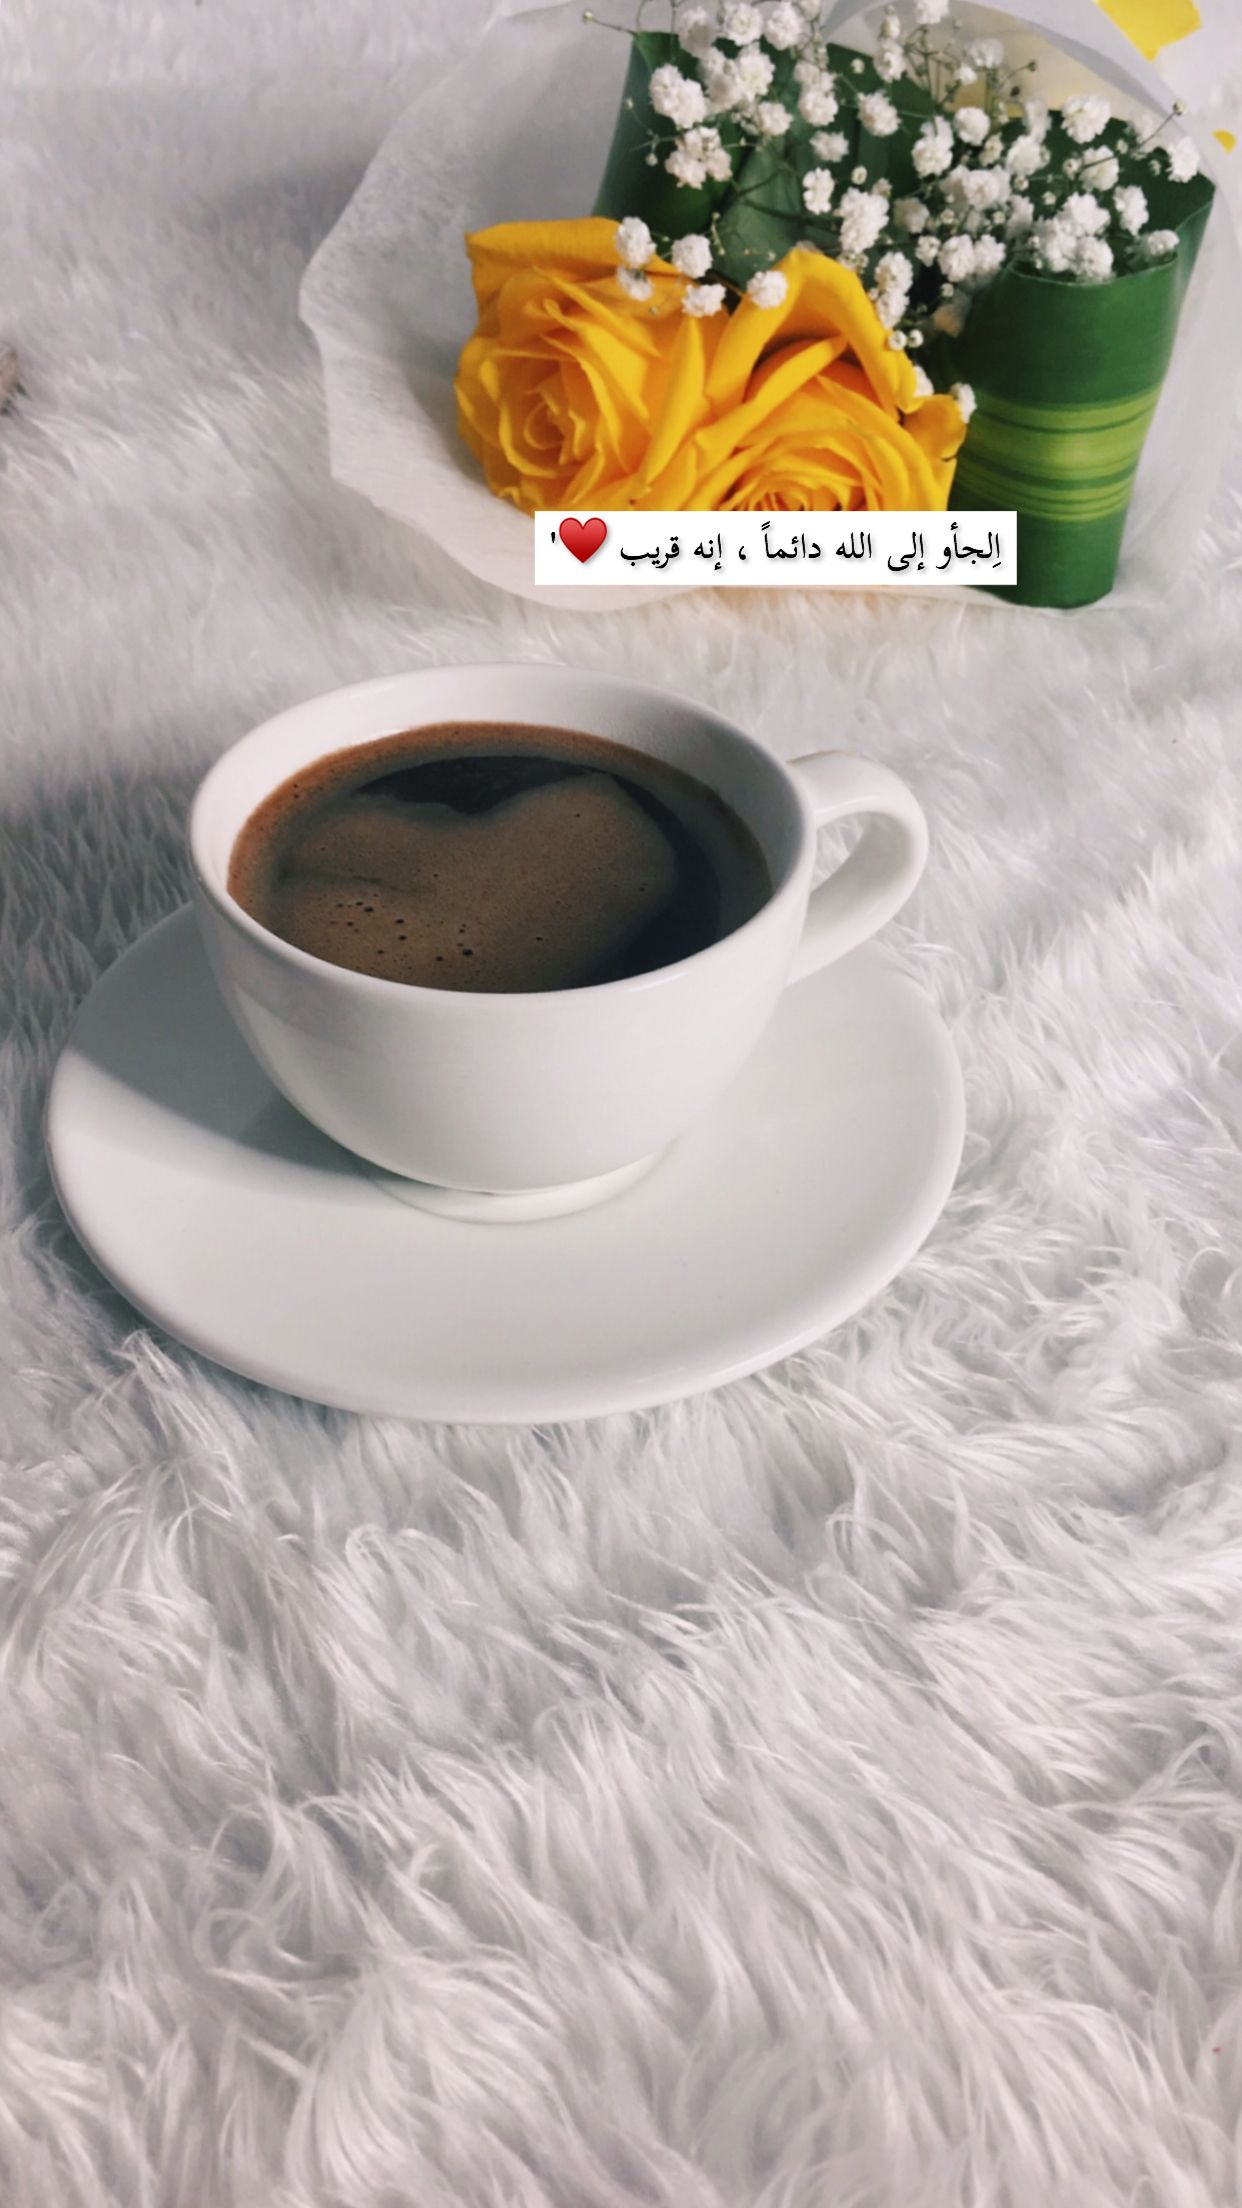 Pin By Fatima Hassan On قهوة قهوتي قهوة الصباح Coffee Coffee Flower Coffee And Books Arabic Love Quotes